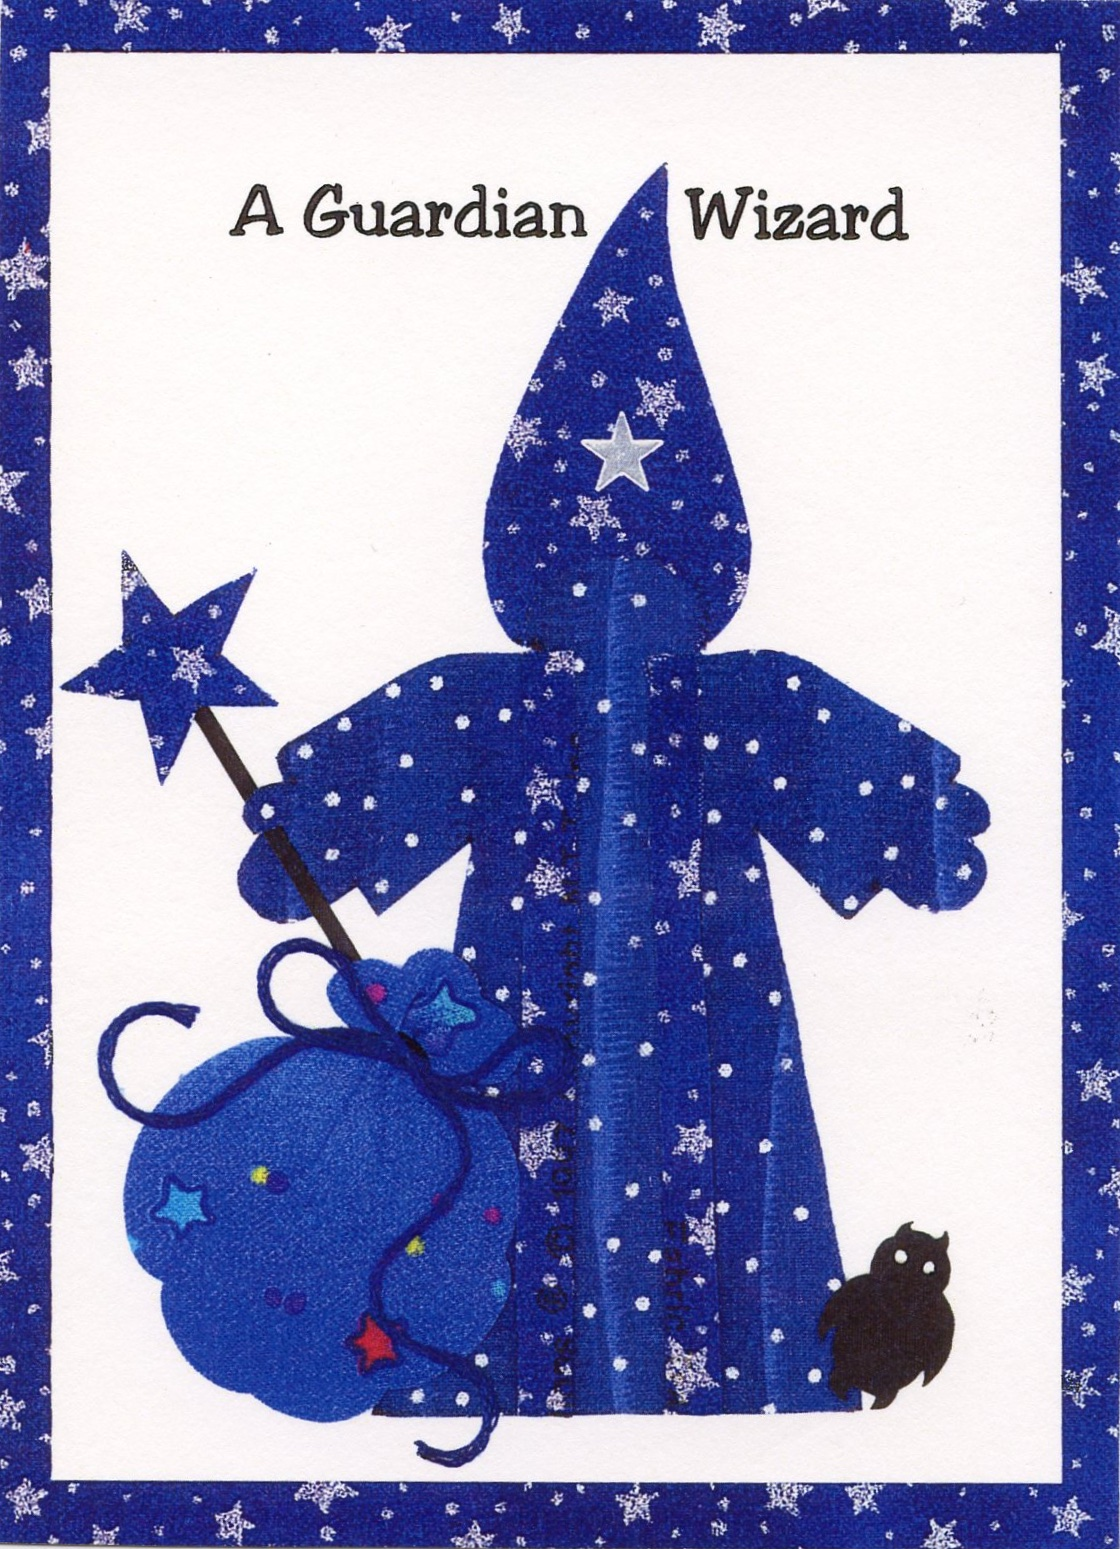 A Guardian Wizard-KariCates.jpg